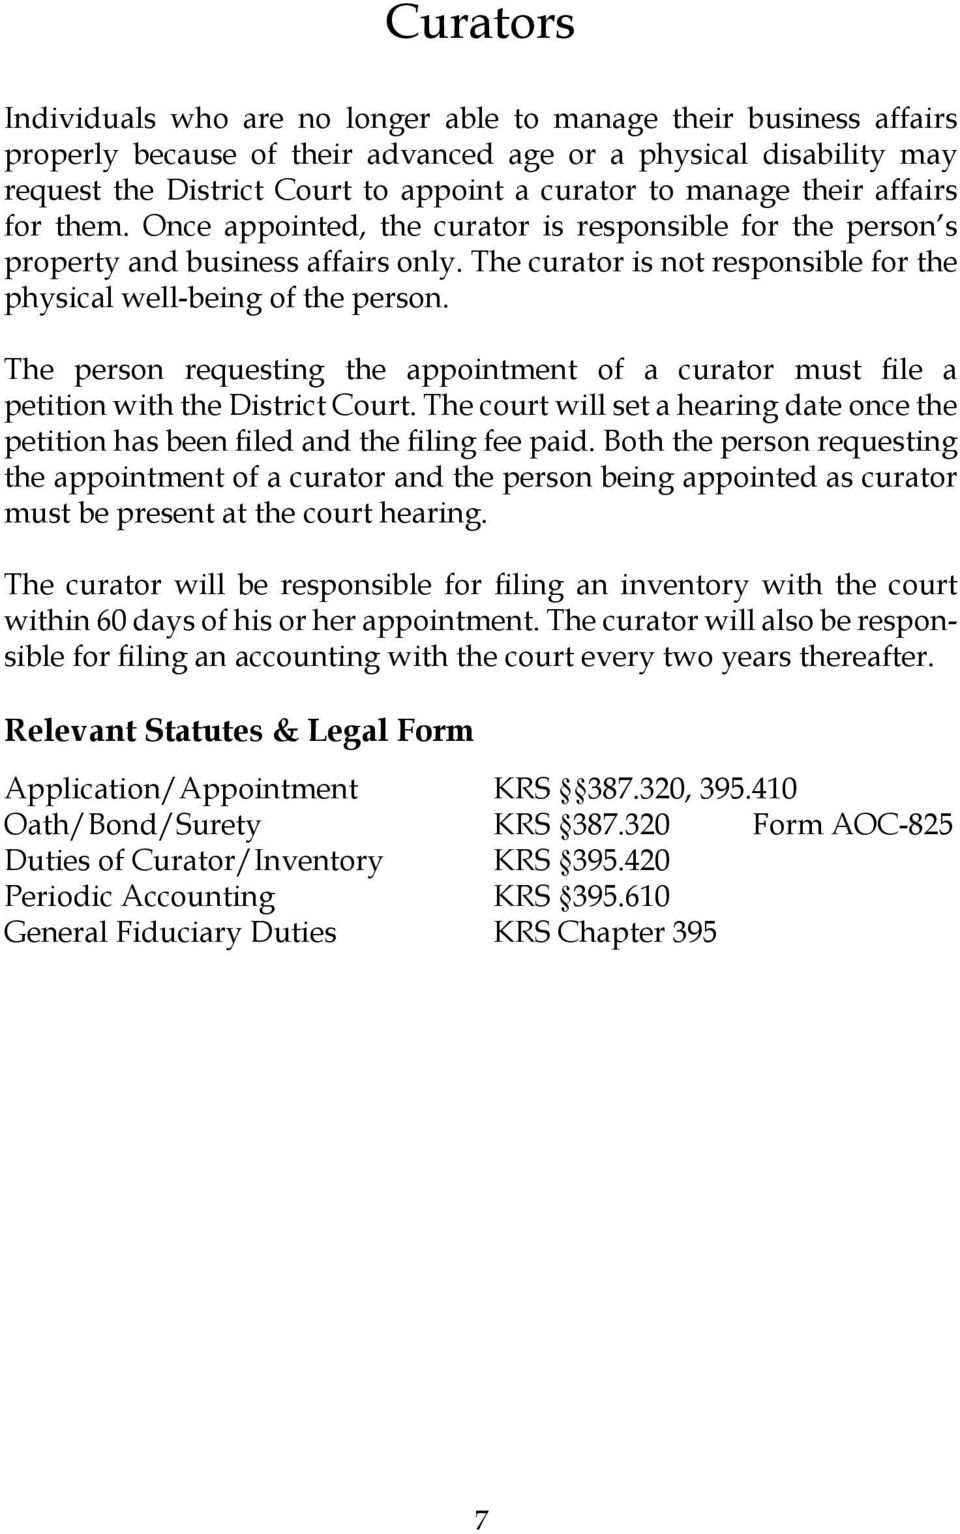 The person requesting the appointment of a curator must file a petition with the District Court. The court will set a hearing date once the petition has been filed and the filing fee paid.